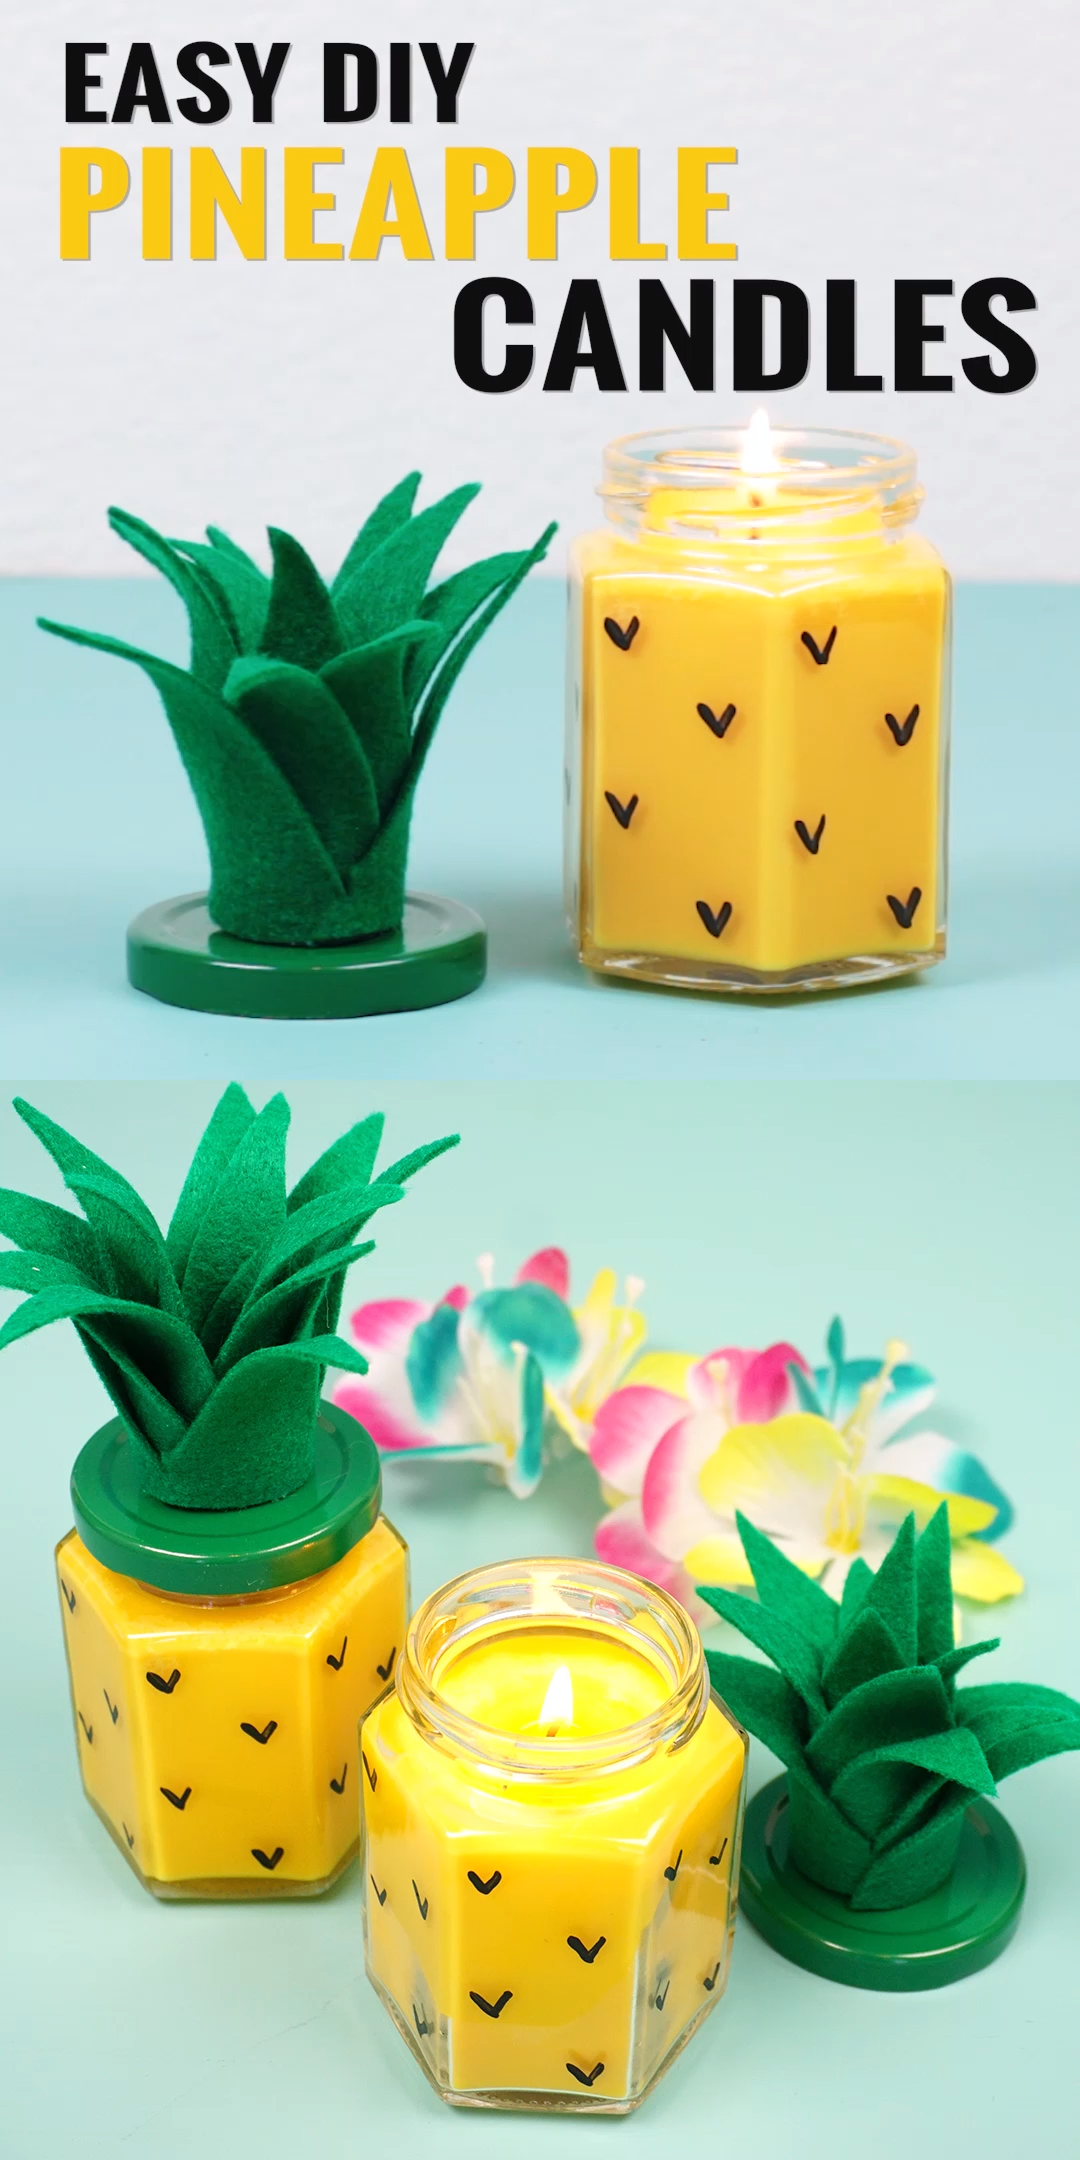 Easy DIY Pineapple Candles #candles